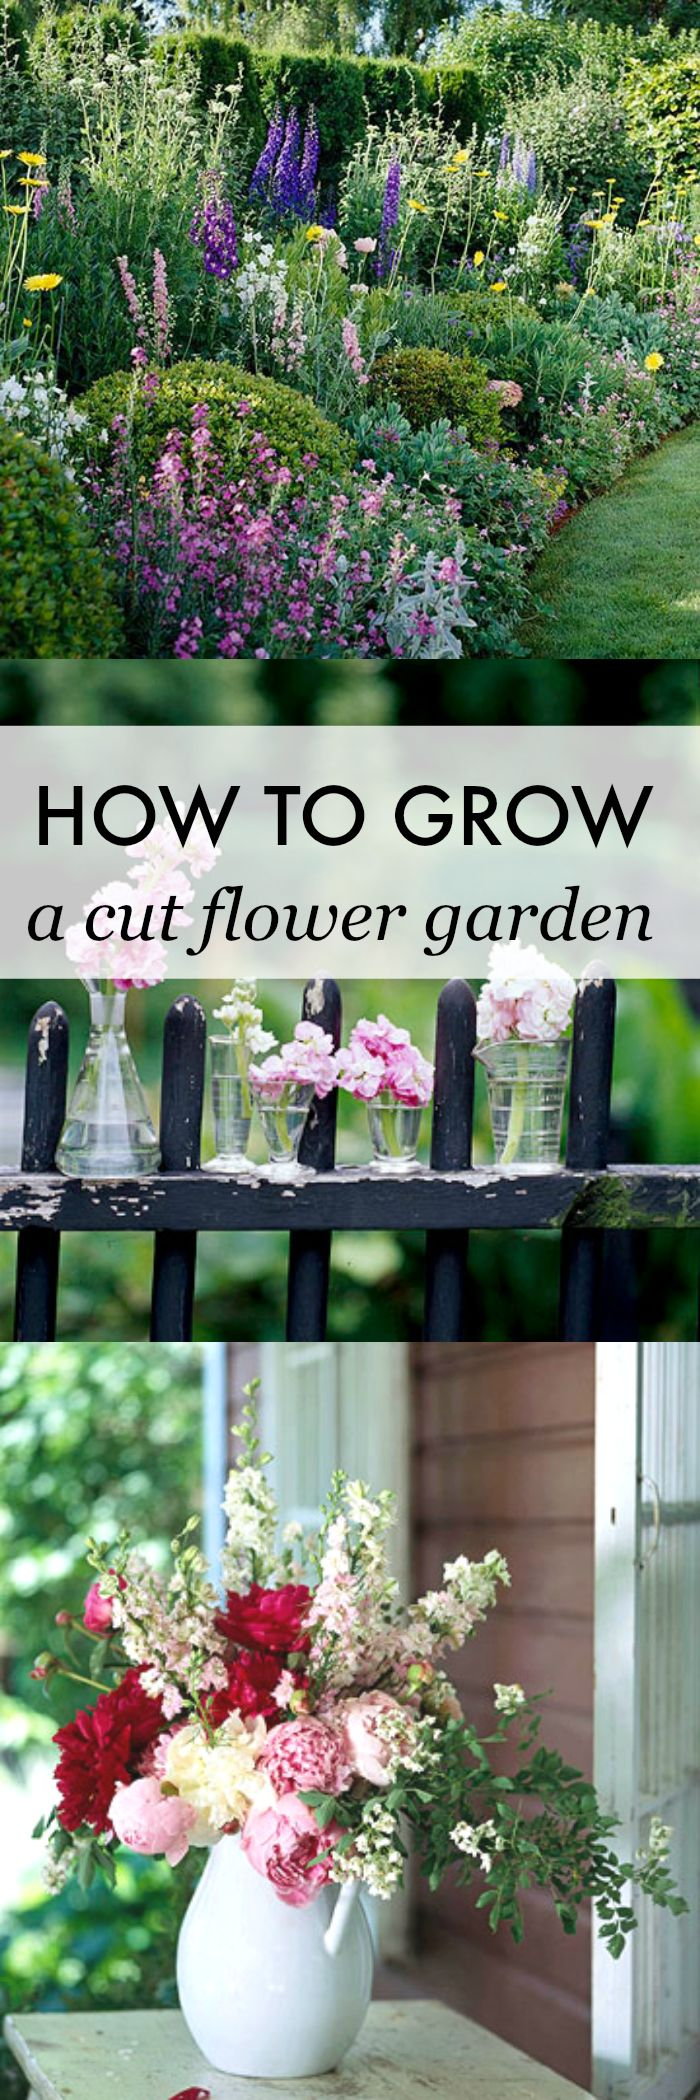 How To Grow A Cut Flower Garden. 25  best ideas about Gardening At Home on Pinterest   Dream garden